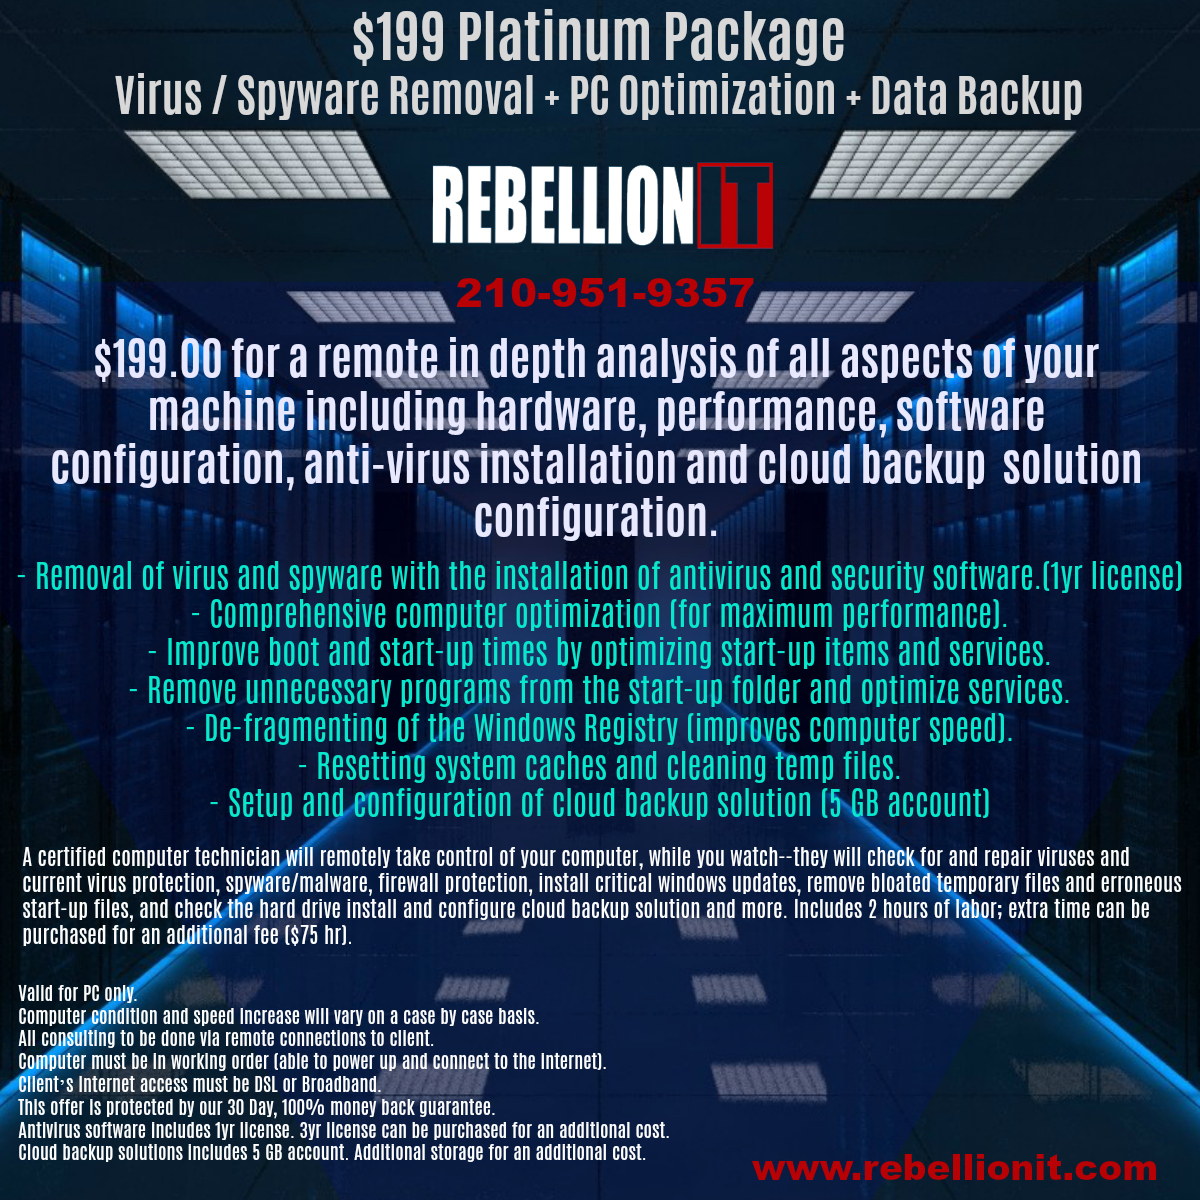 $199 Platinum Package